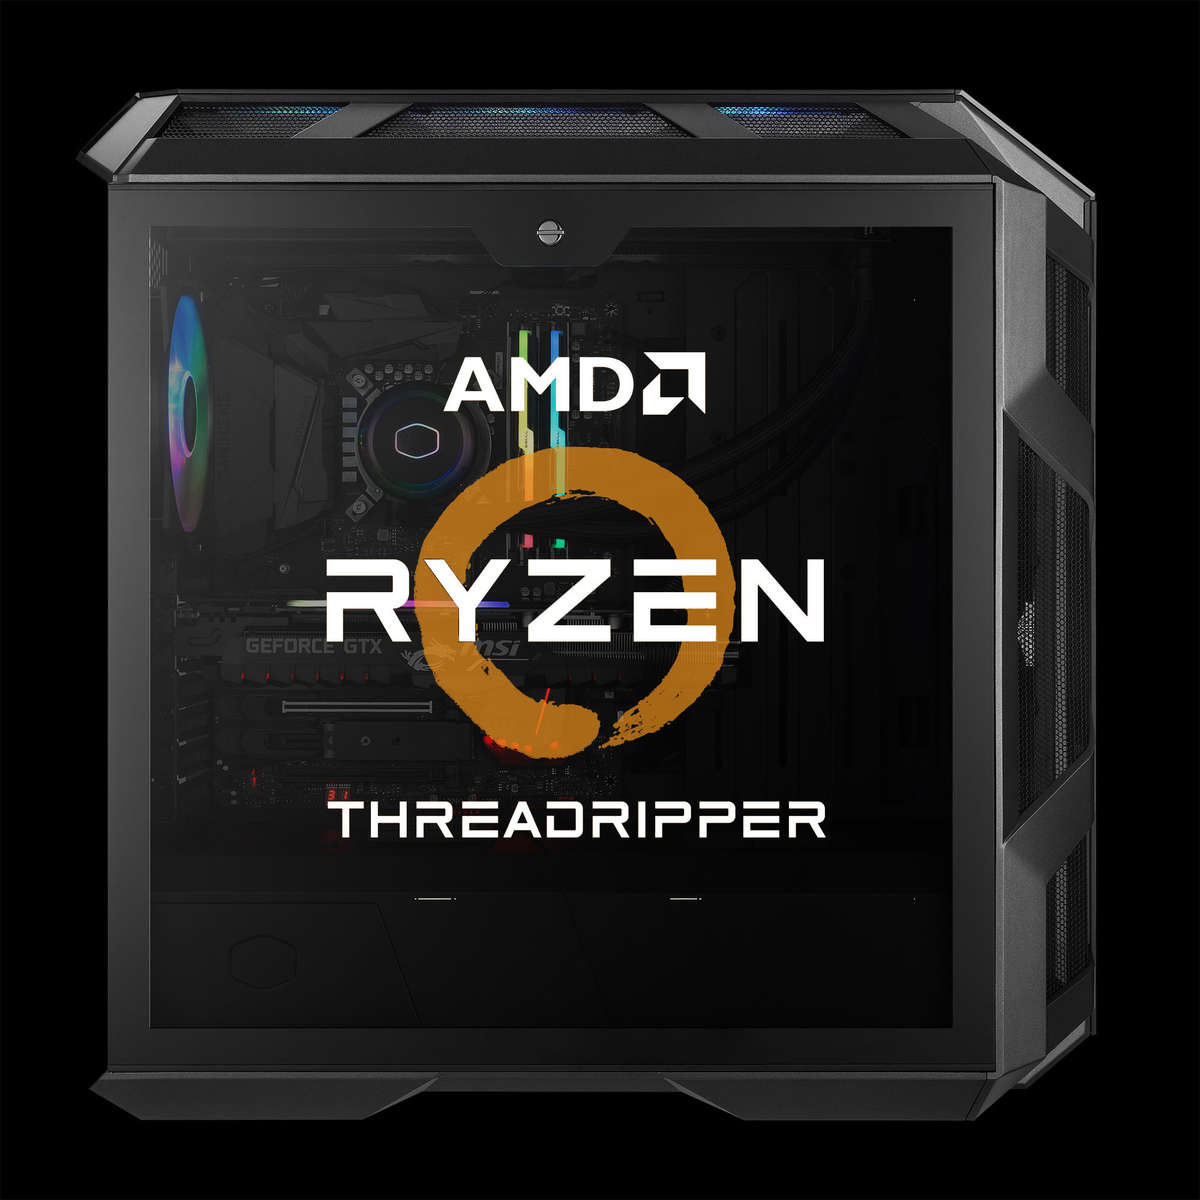 Chillblast Fusion Threadripper 3 3970X RTX 2080 Ti Ultimate Streaming PC